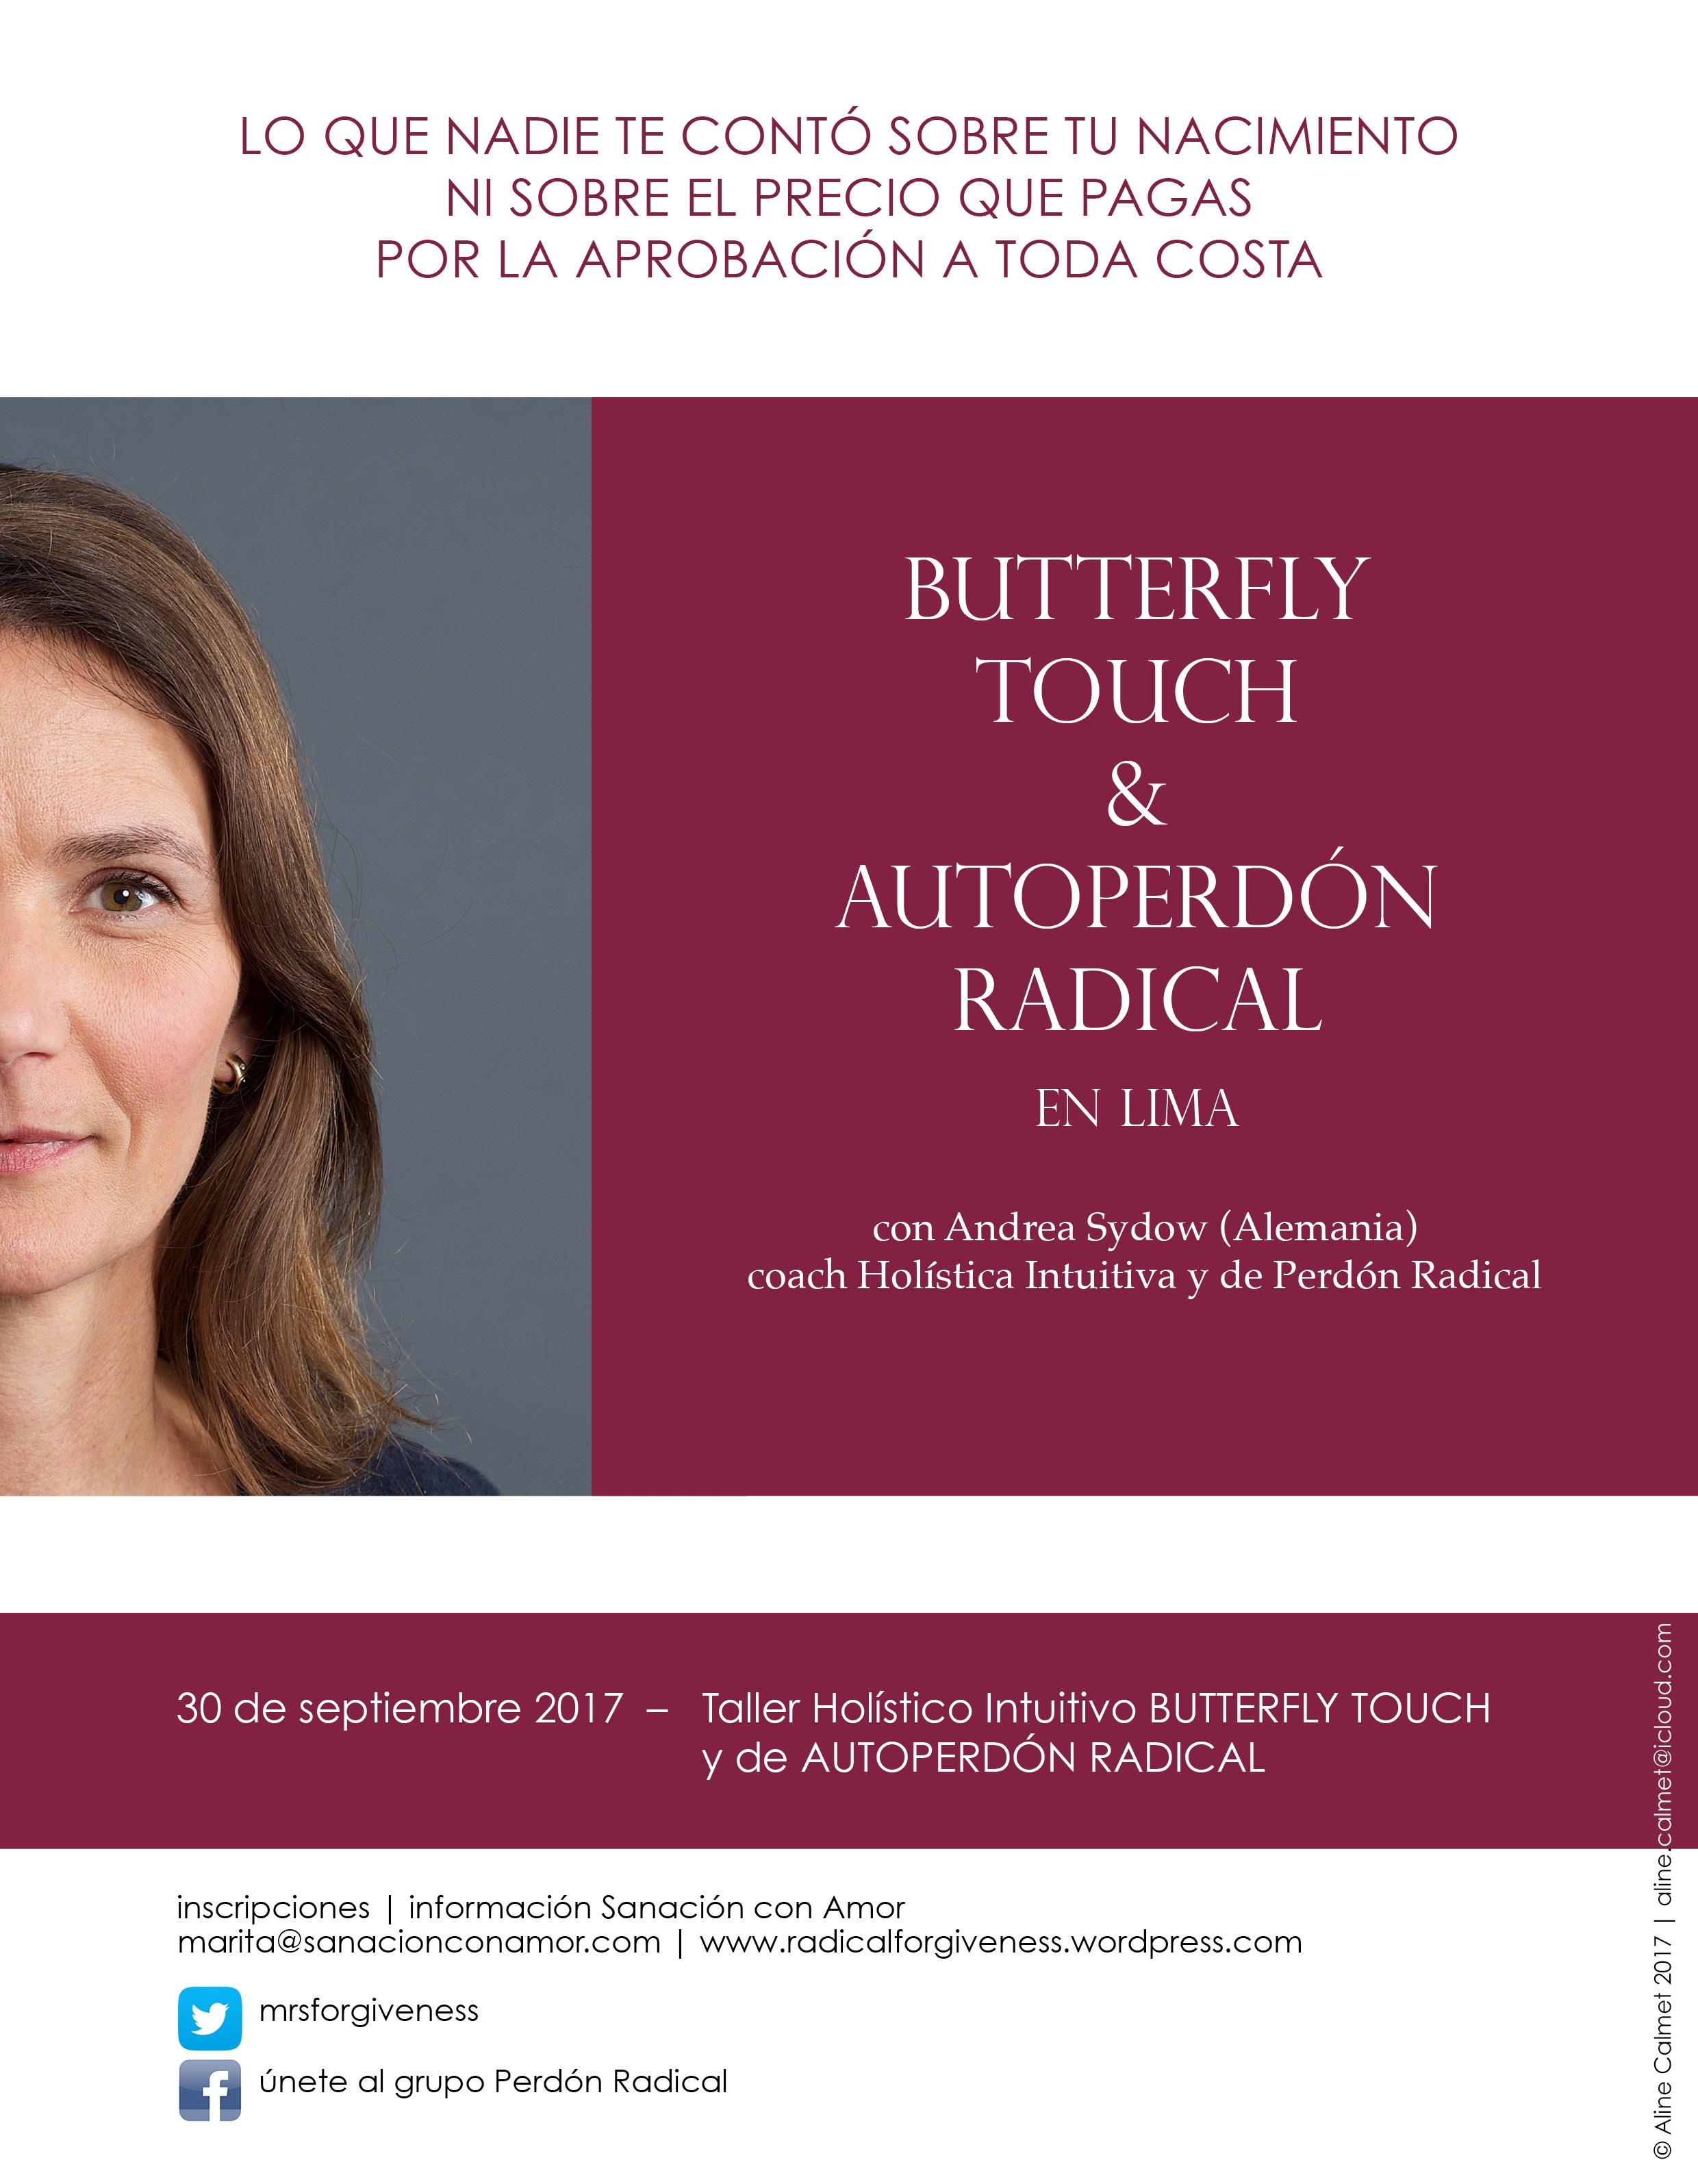 Taller con Andrea Sydow Butterfly Touch & Autoperdón Radical